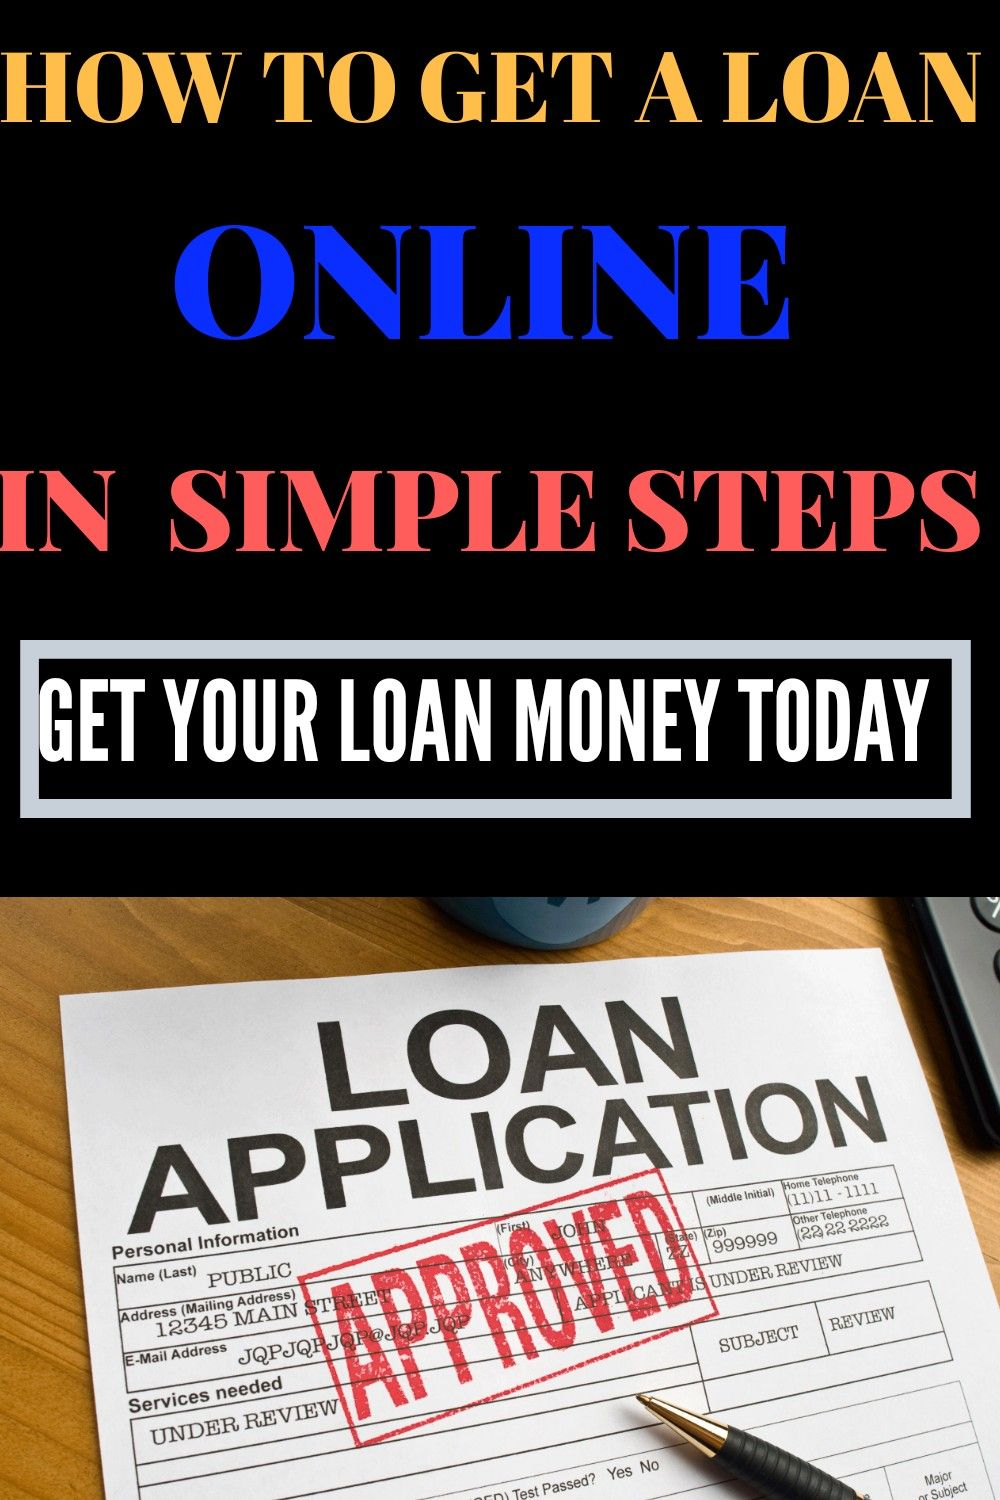 Payday Loans In 2020 Bad Credit Payday Loans Payday Loans Online Instant Payday Loans